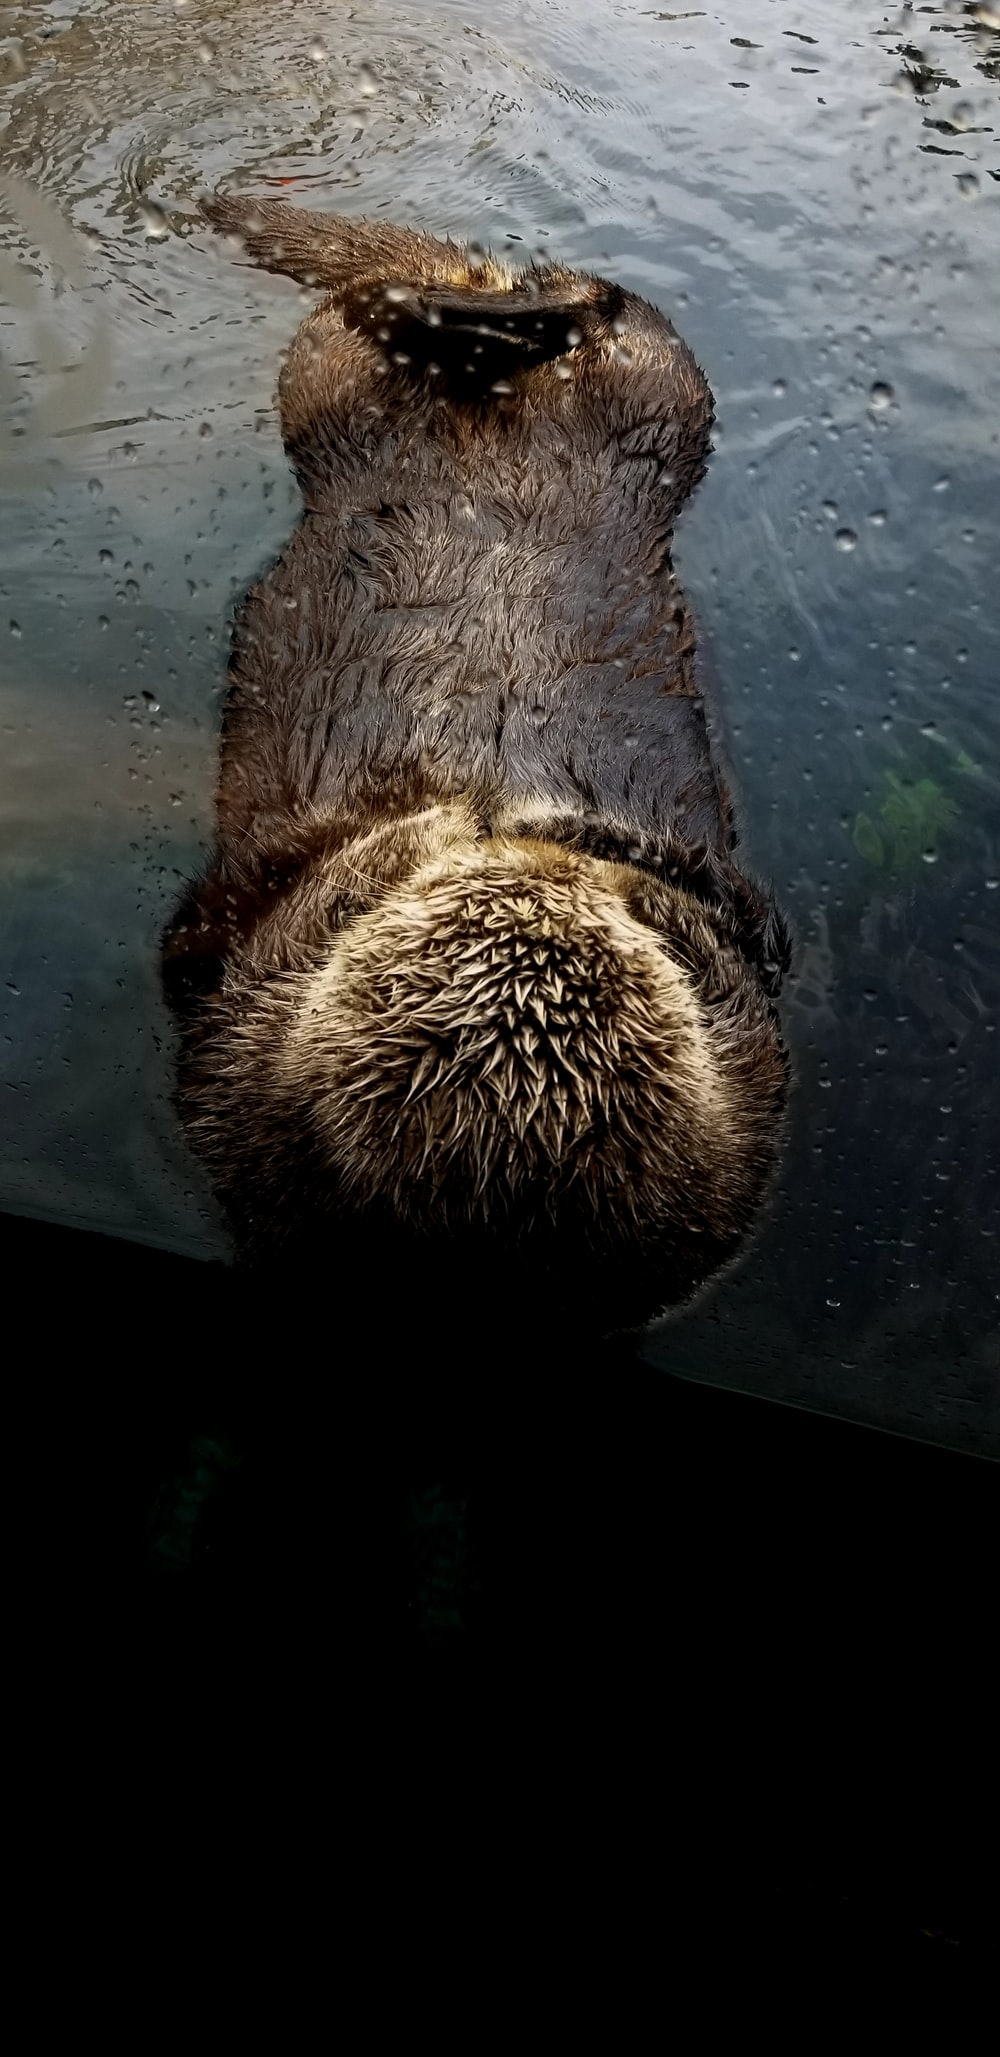 Sea Otter Pictures Download Free Images On Unsplash